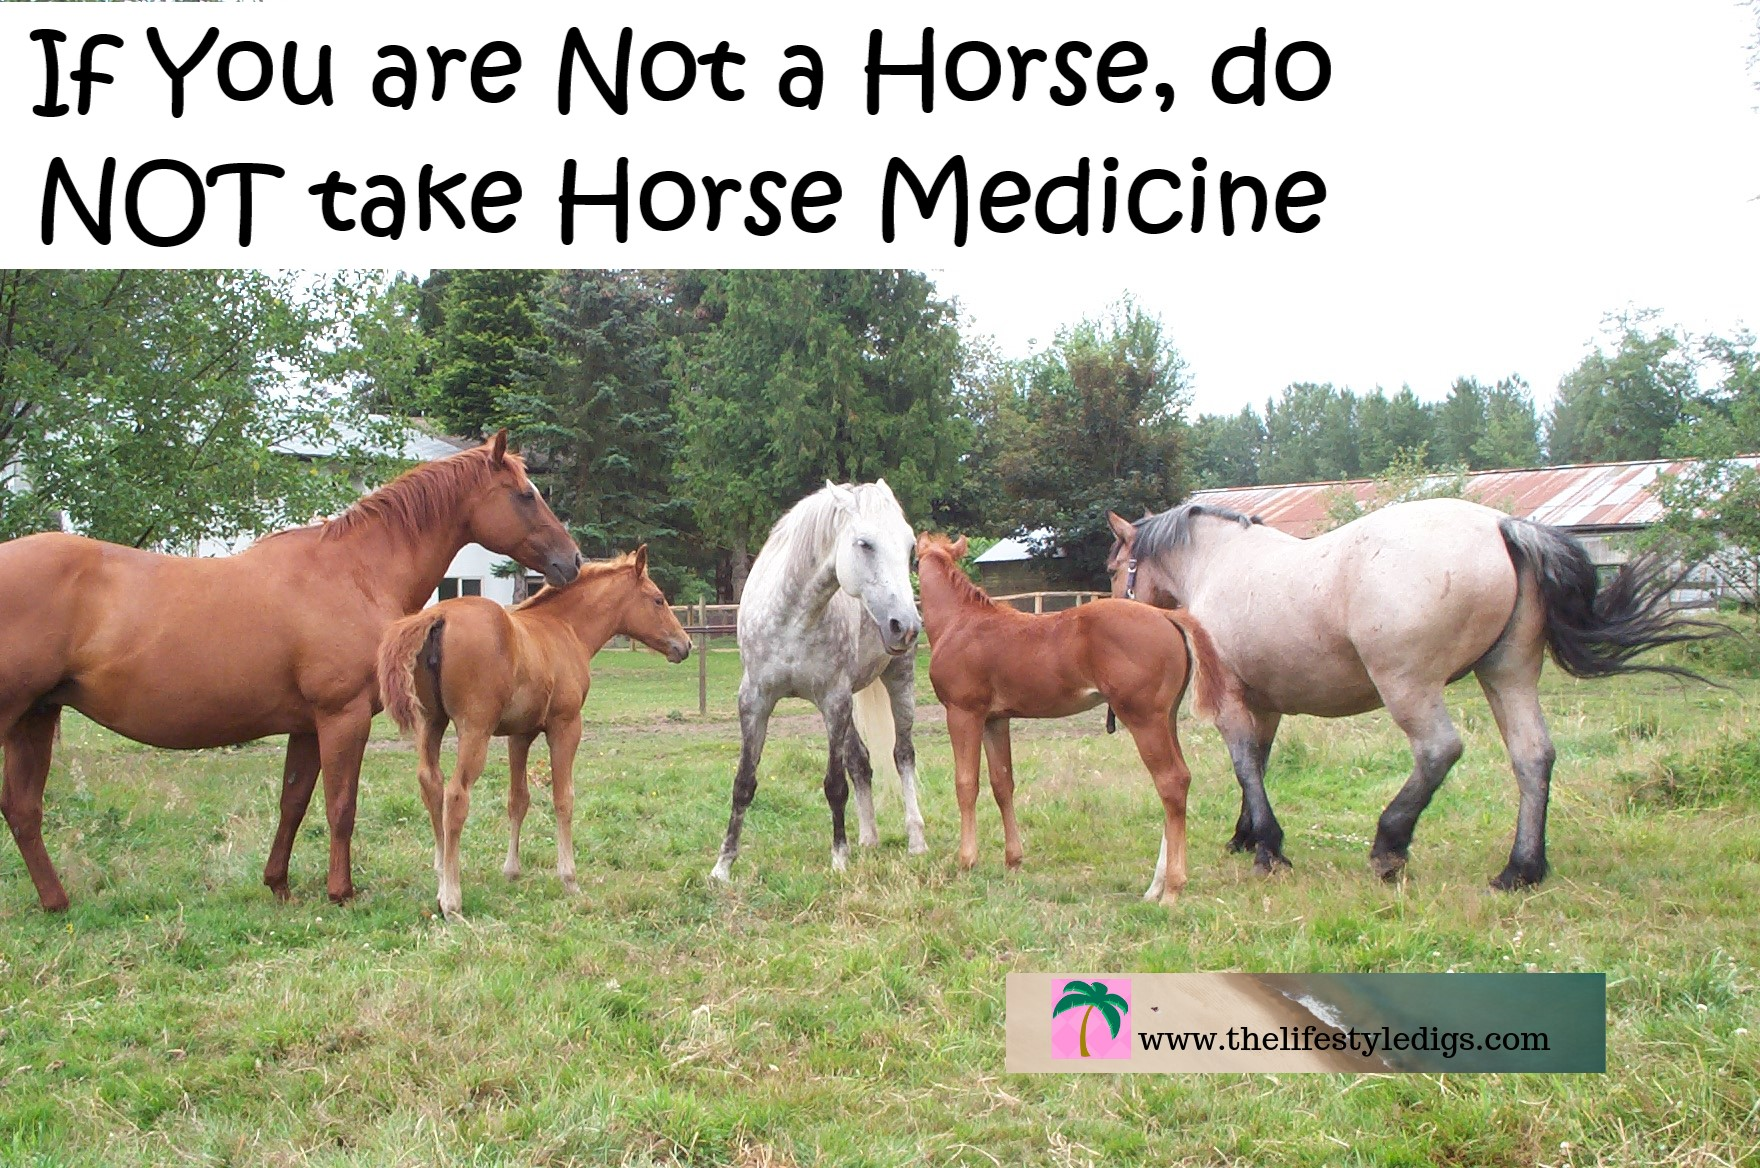 If You are Not a Horse, do NOT take Horse Medicine